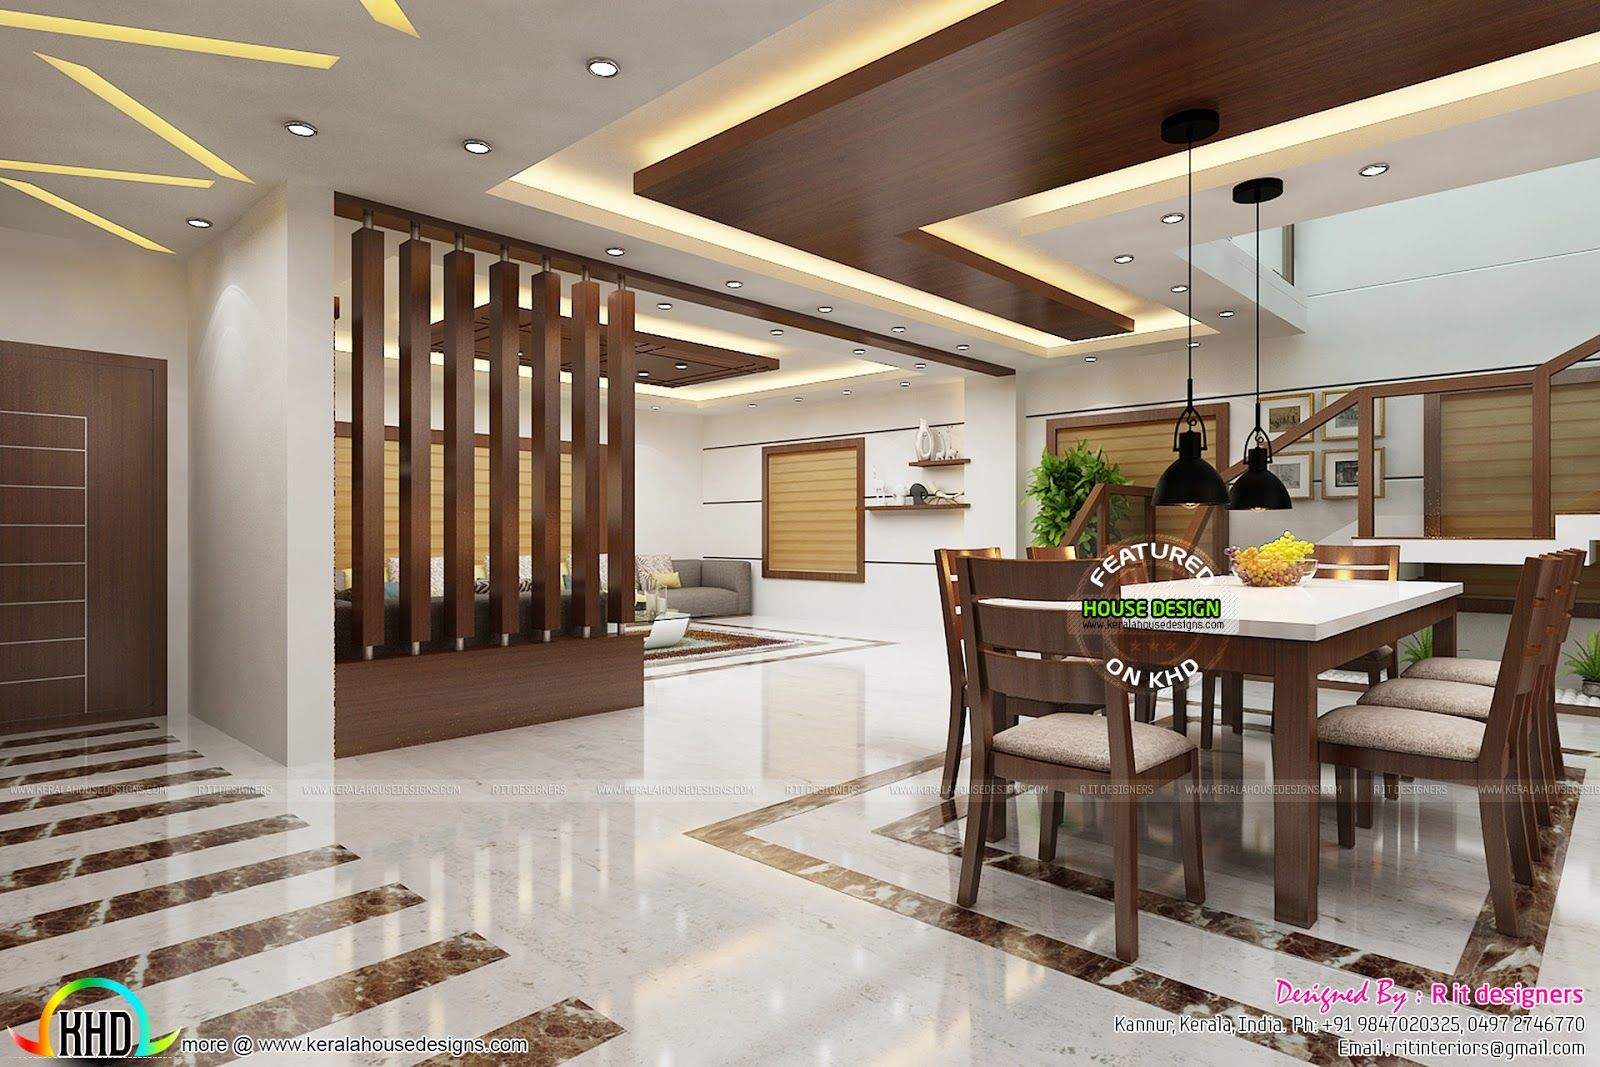 Partition Design For Living Room And Dining Hall 2017 Kitchen And Dining Trends In Kerala In 2018 Hall